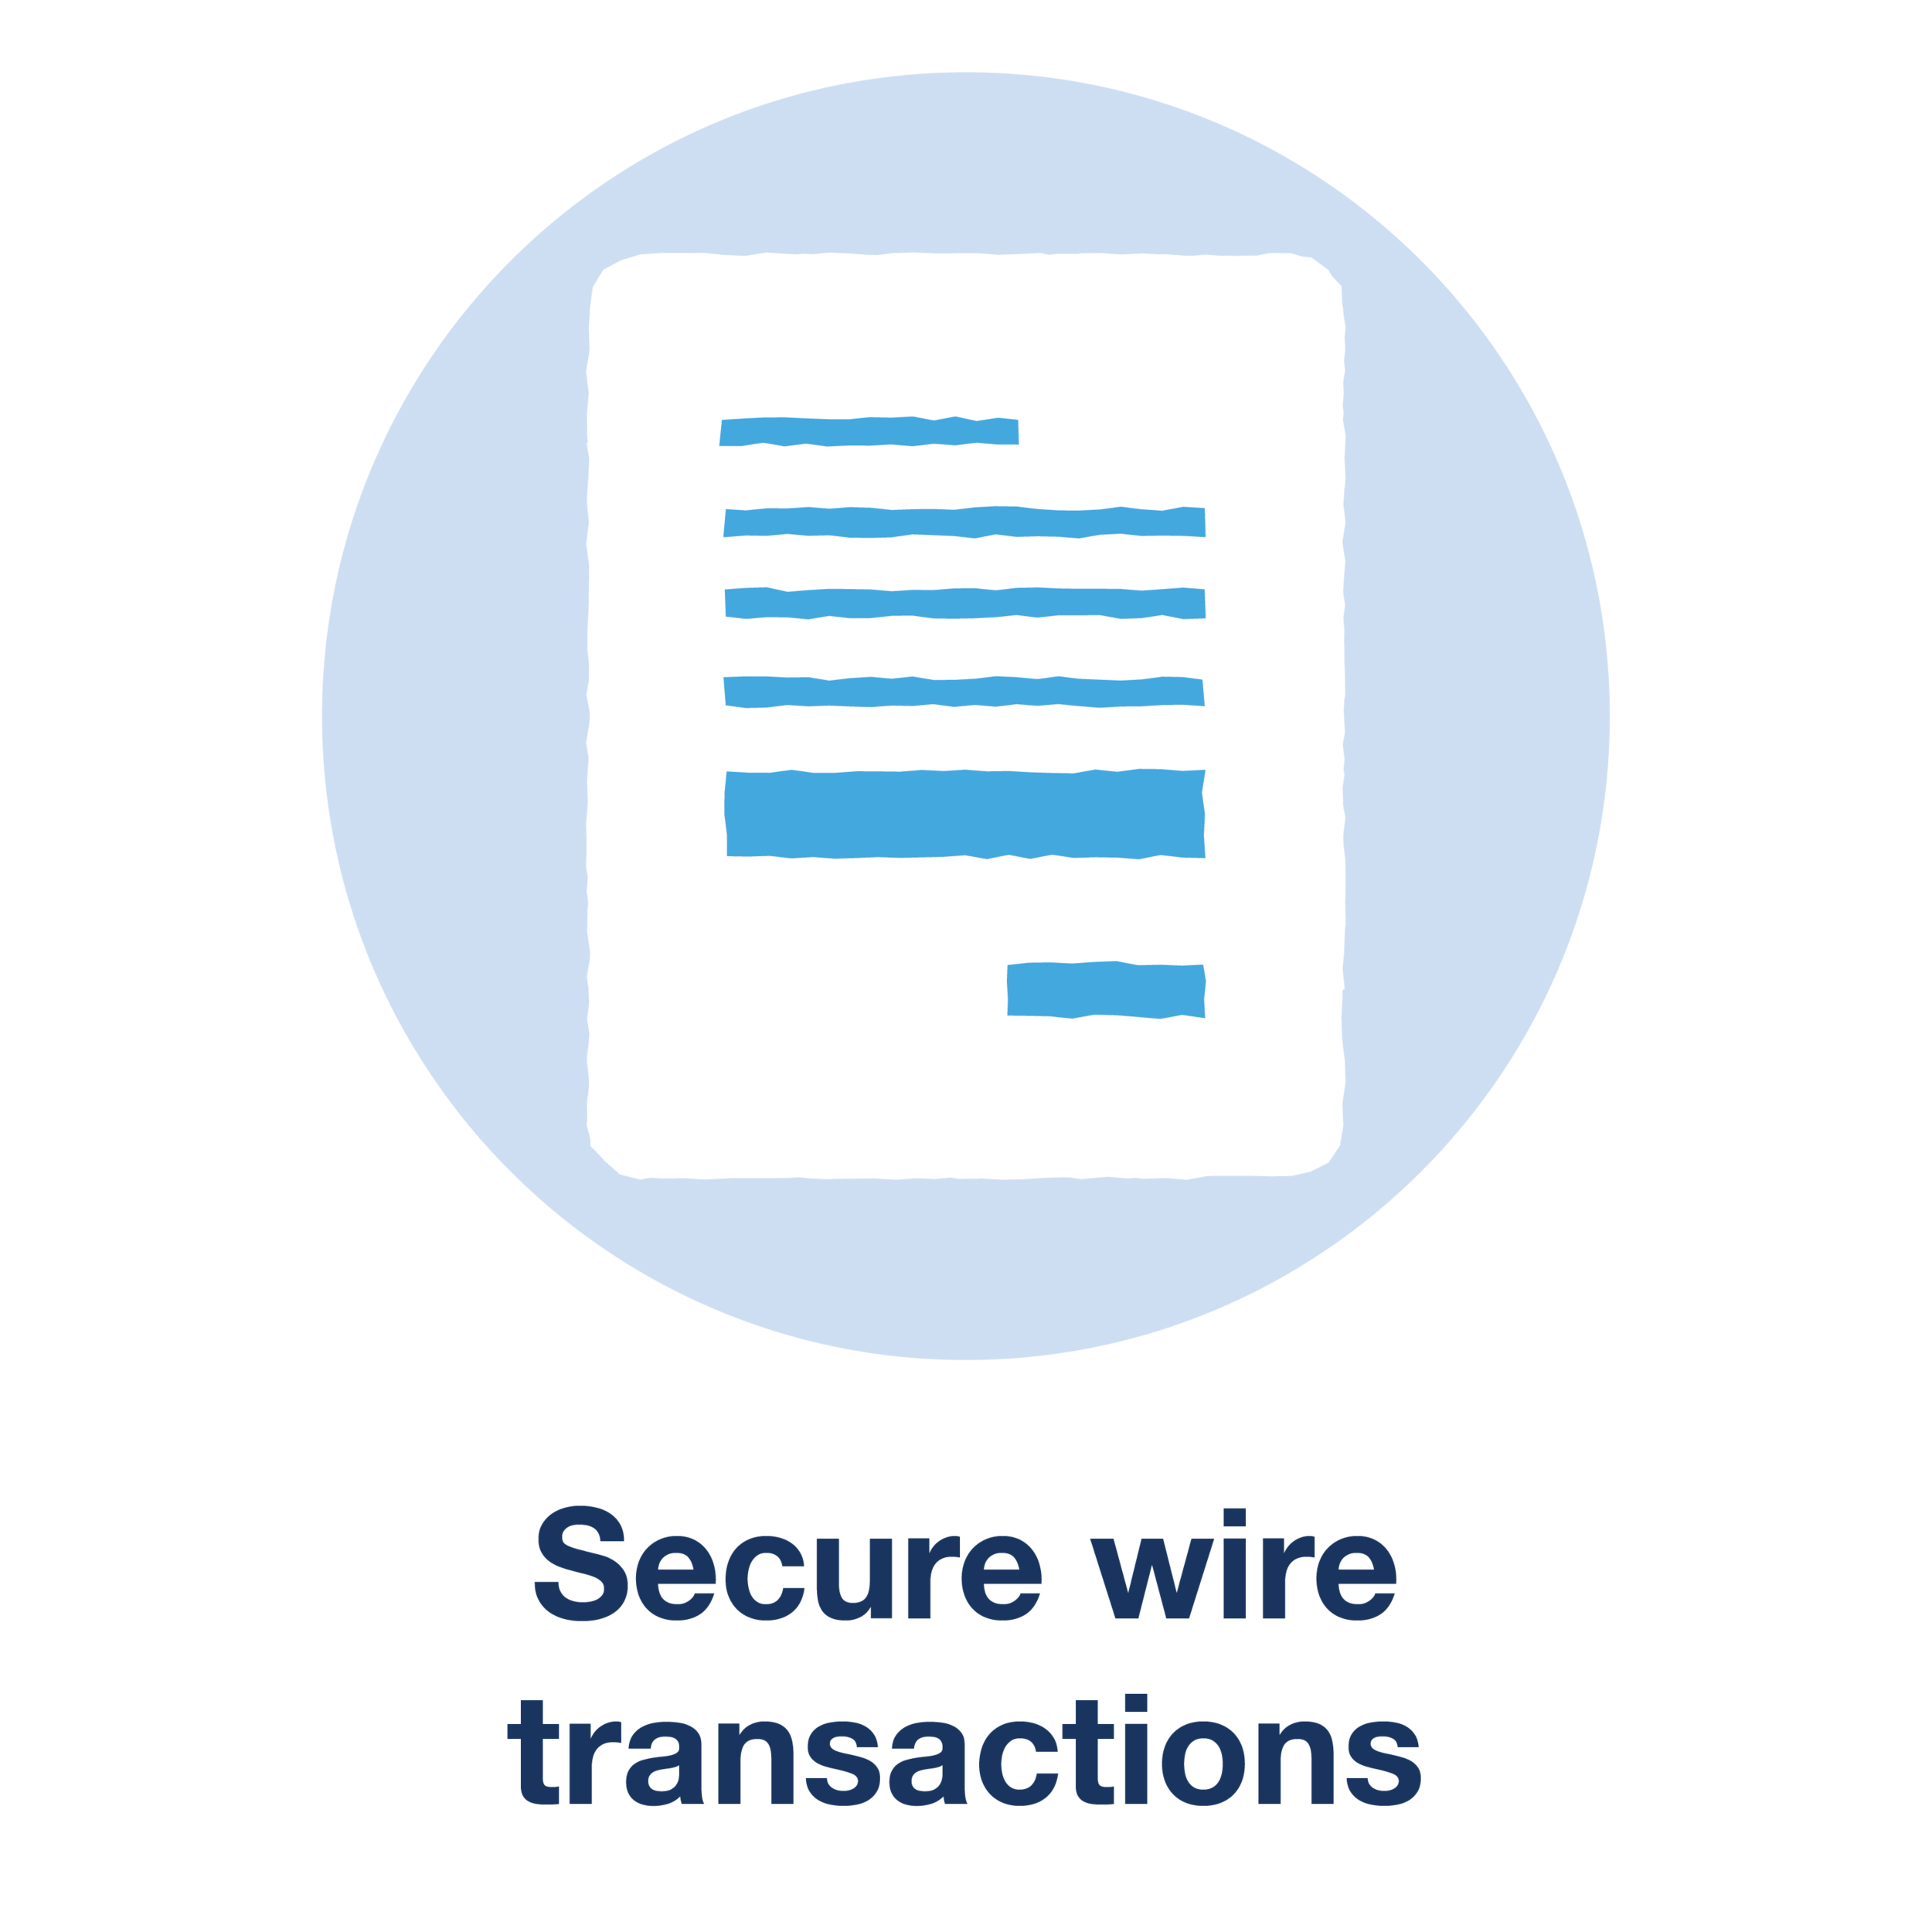 image_secure_wire_transactions.png